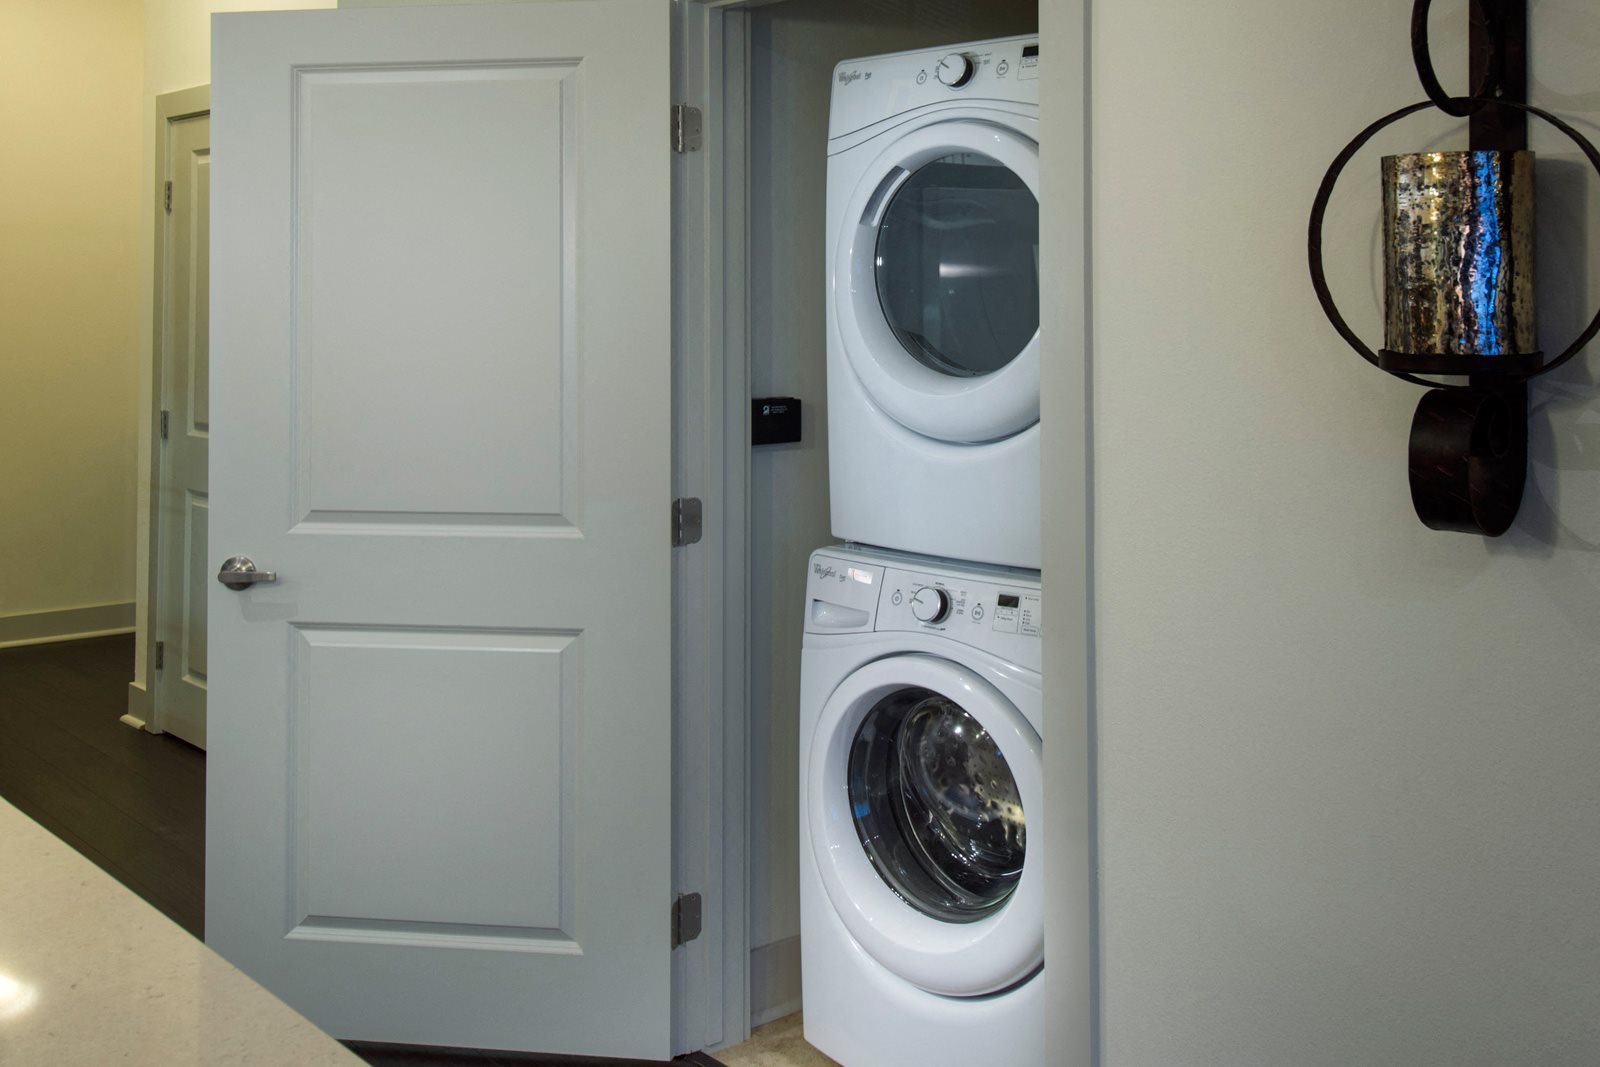 Energy Efficient, Full-Sized Washer and Dryer at Olympic by Windsor, 936 S. Olive St, Los Angeles